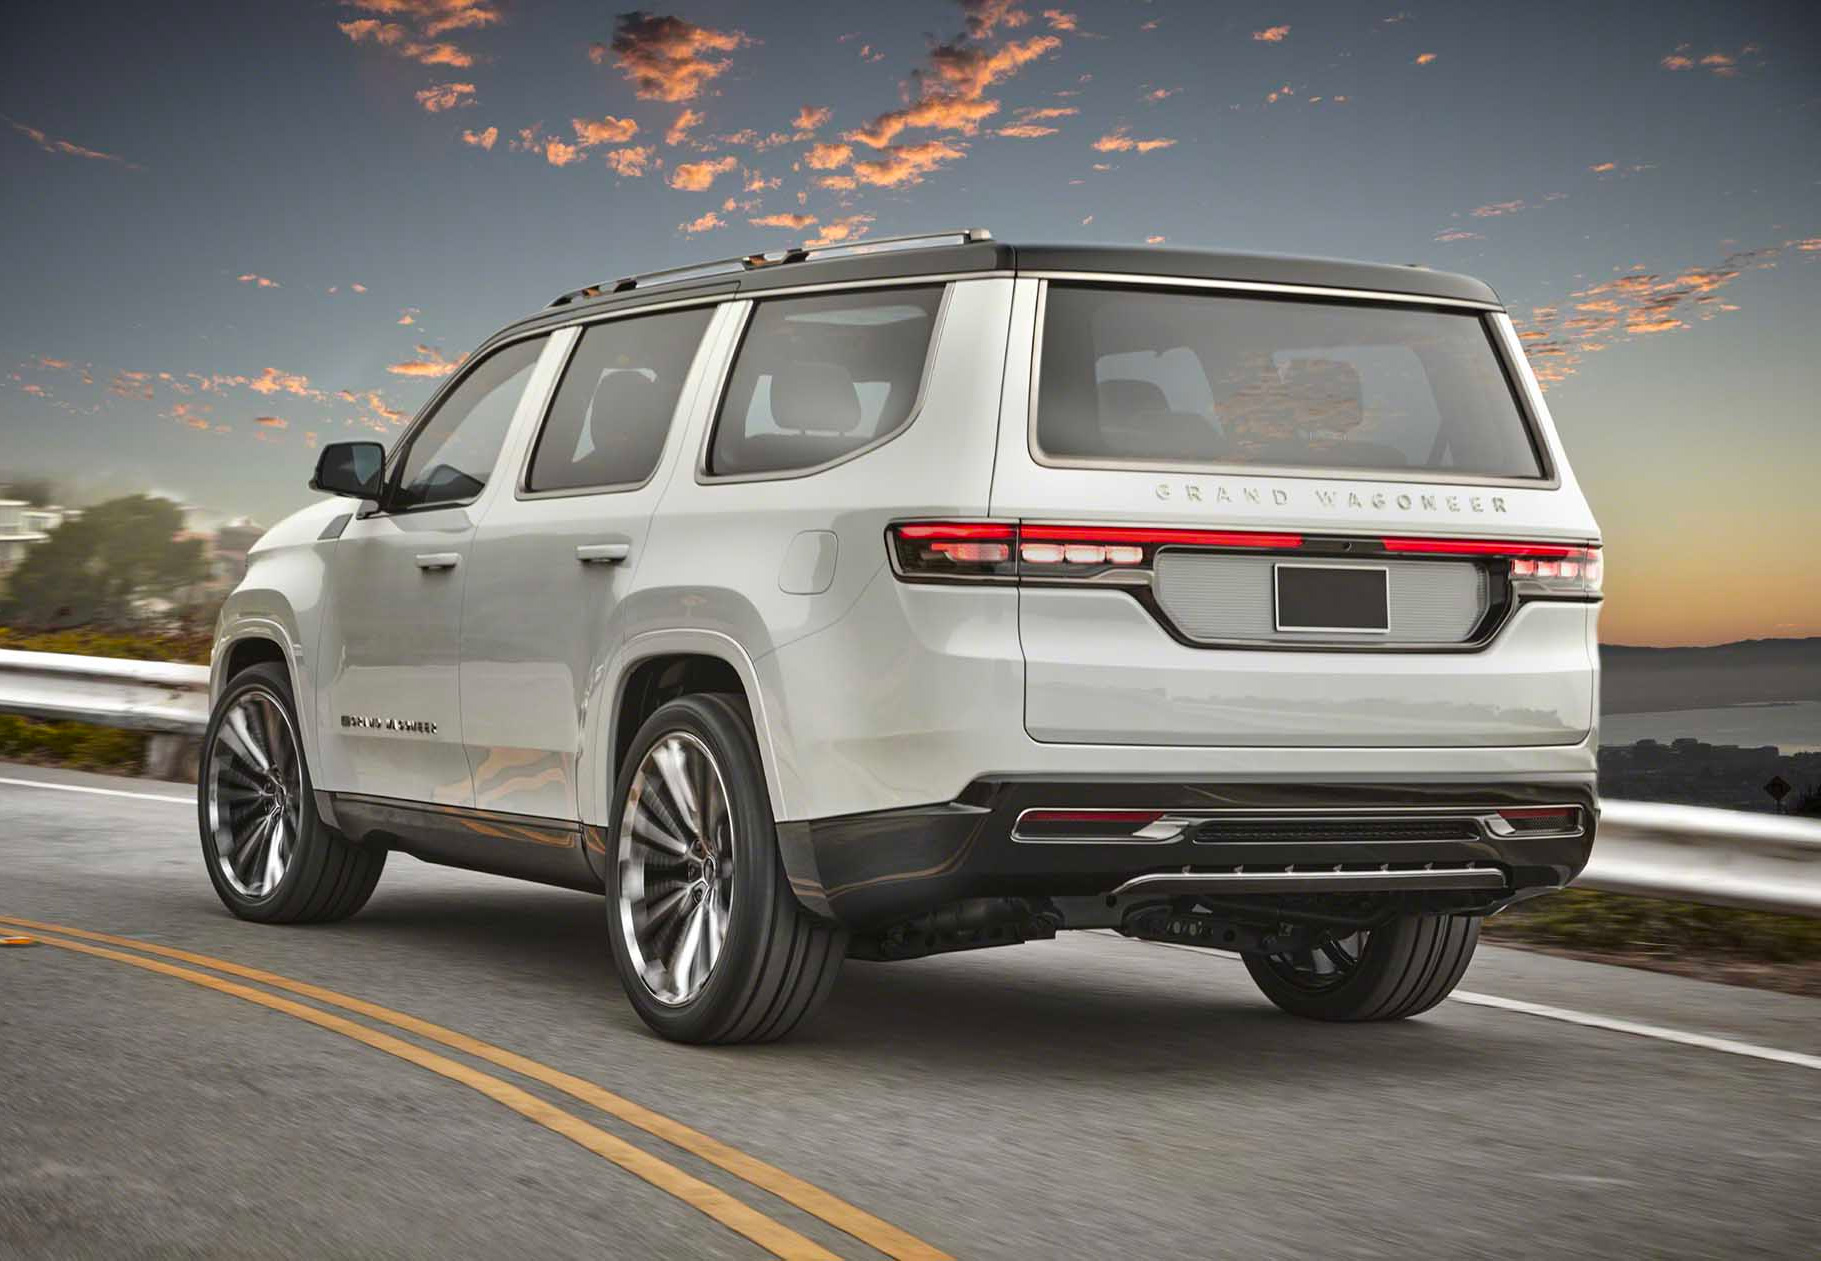 2021 Grand Wagoneer Takes Jeep to a New Level of Luxury at werd.com